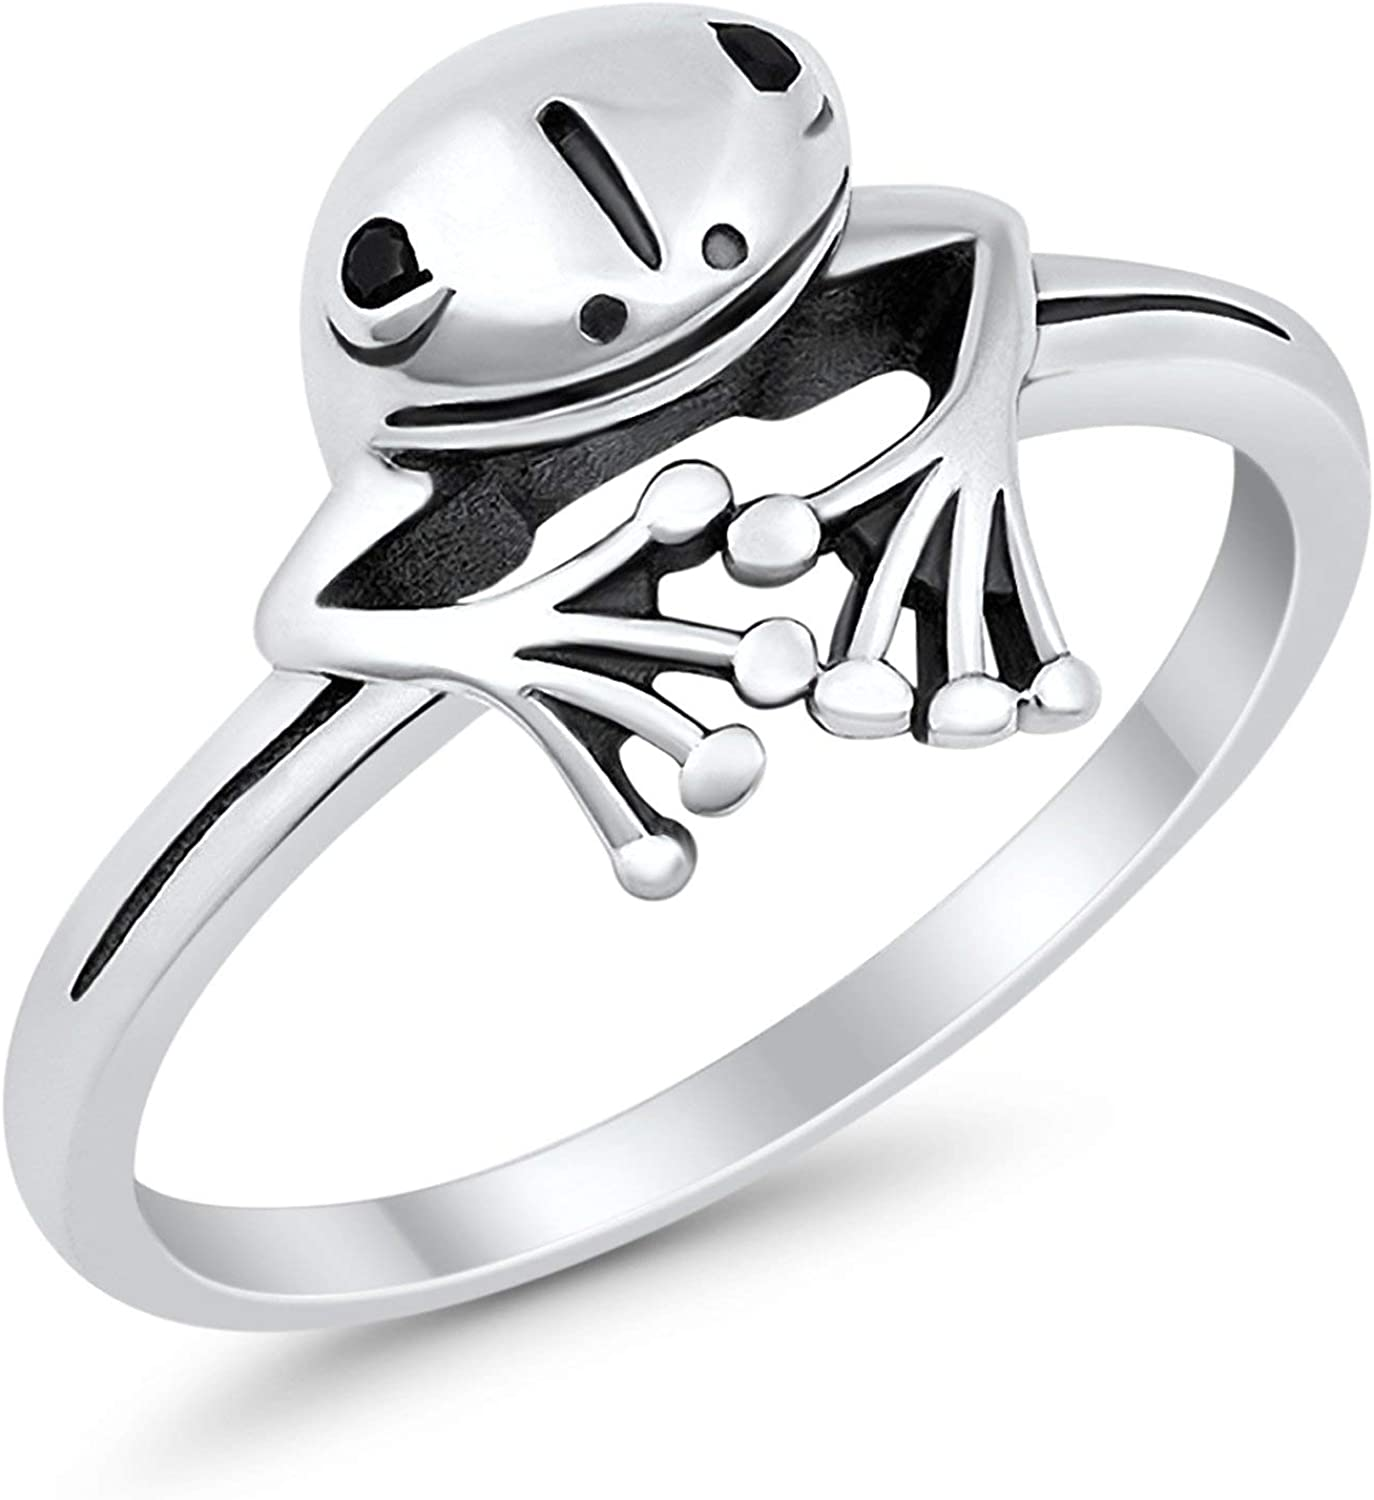 Blue Apple Co. Frog Ring Peeping Frog Band Oxidized Solid 925 Sterling Silver